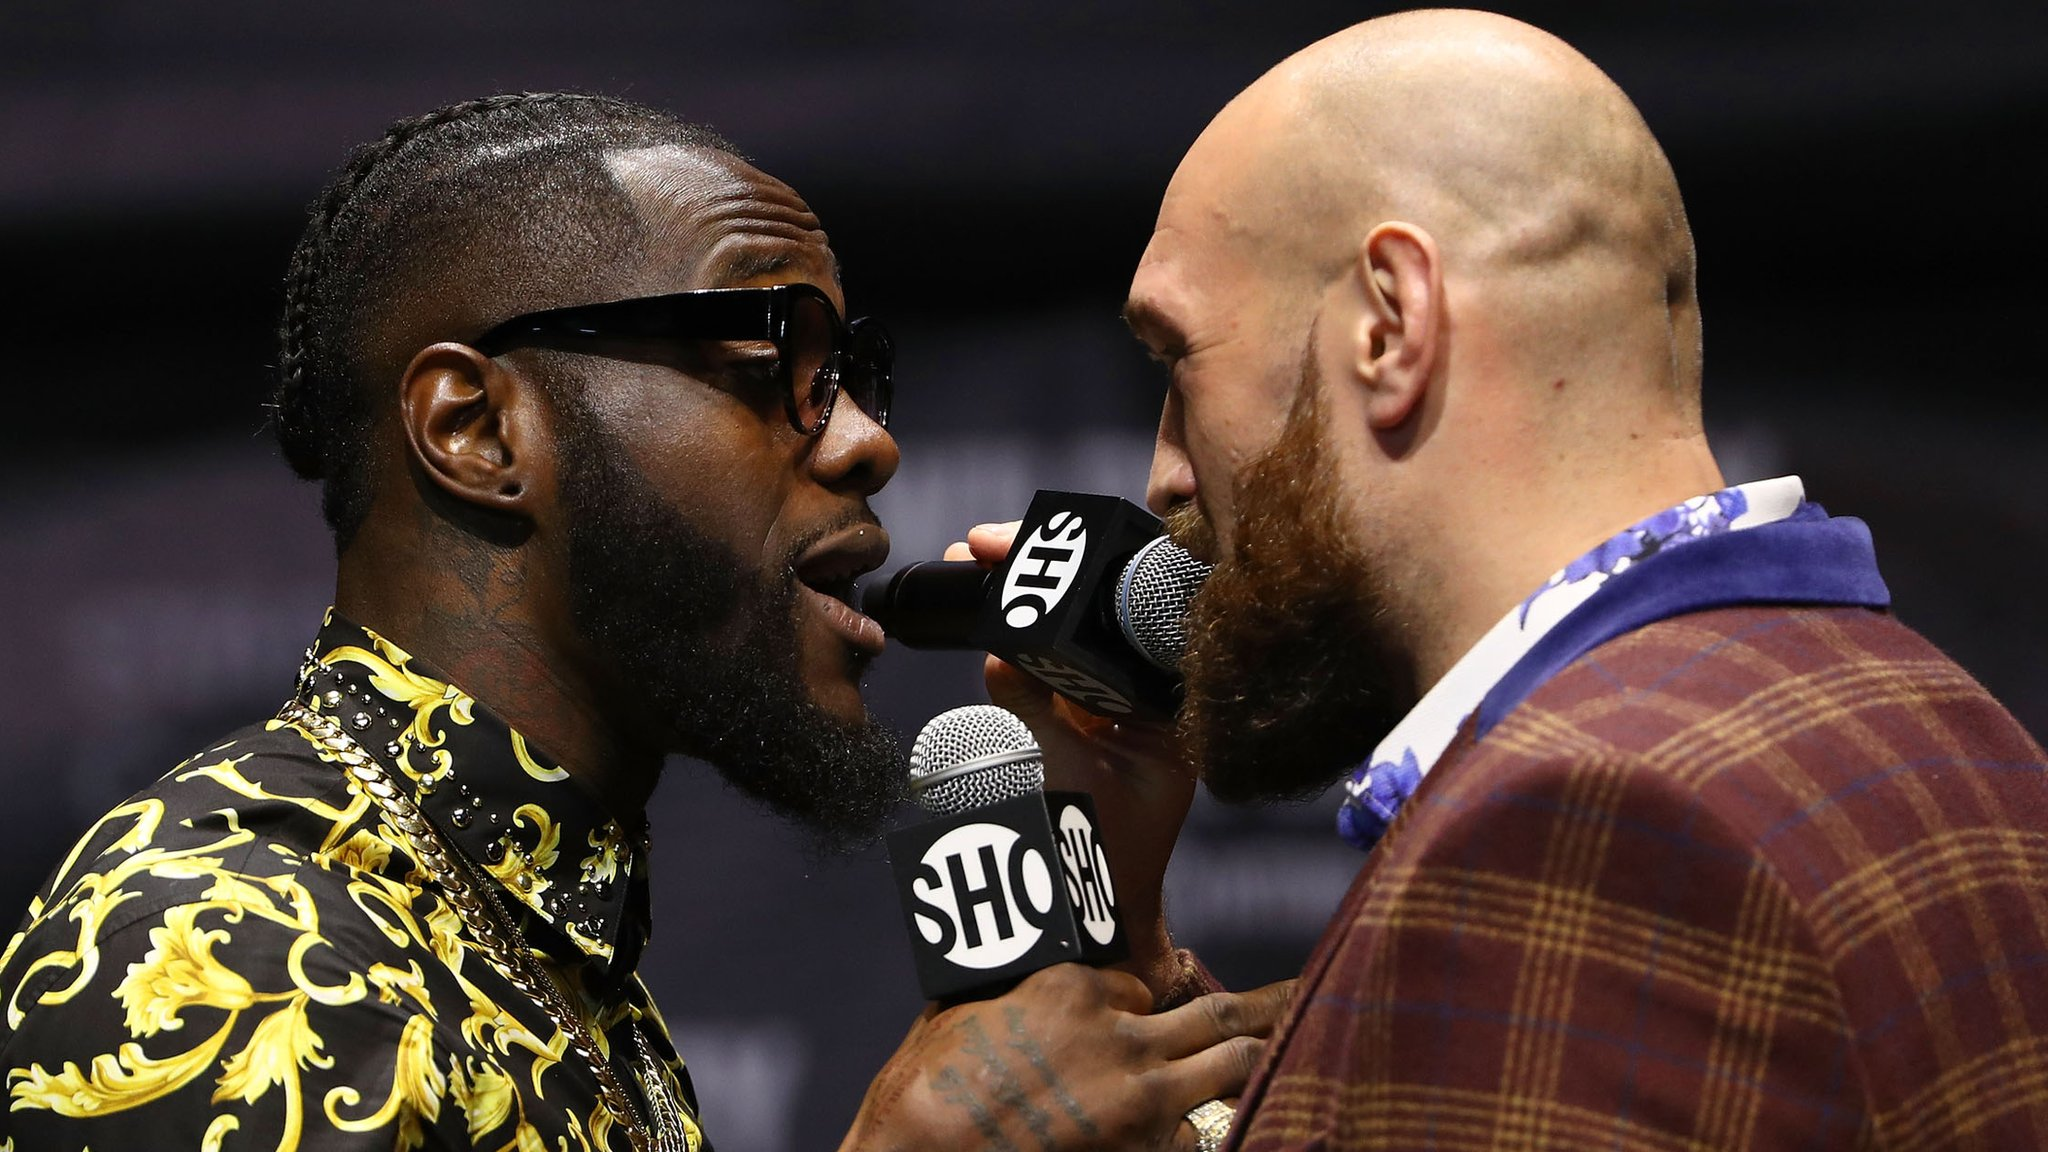 I'll be Fury's worst nightmare, says Wilder